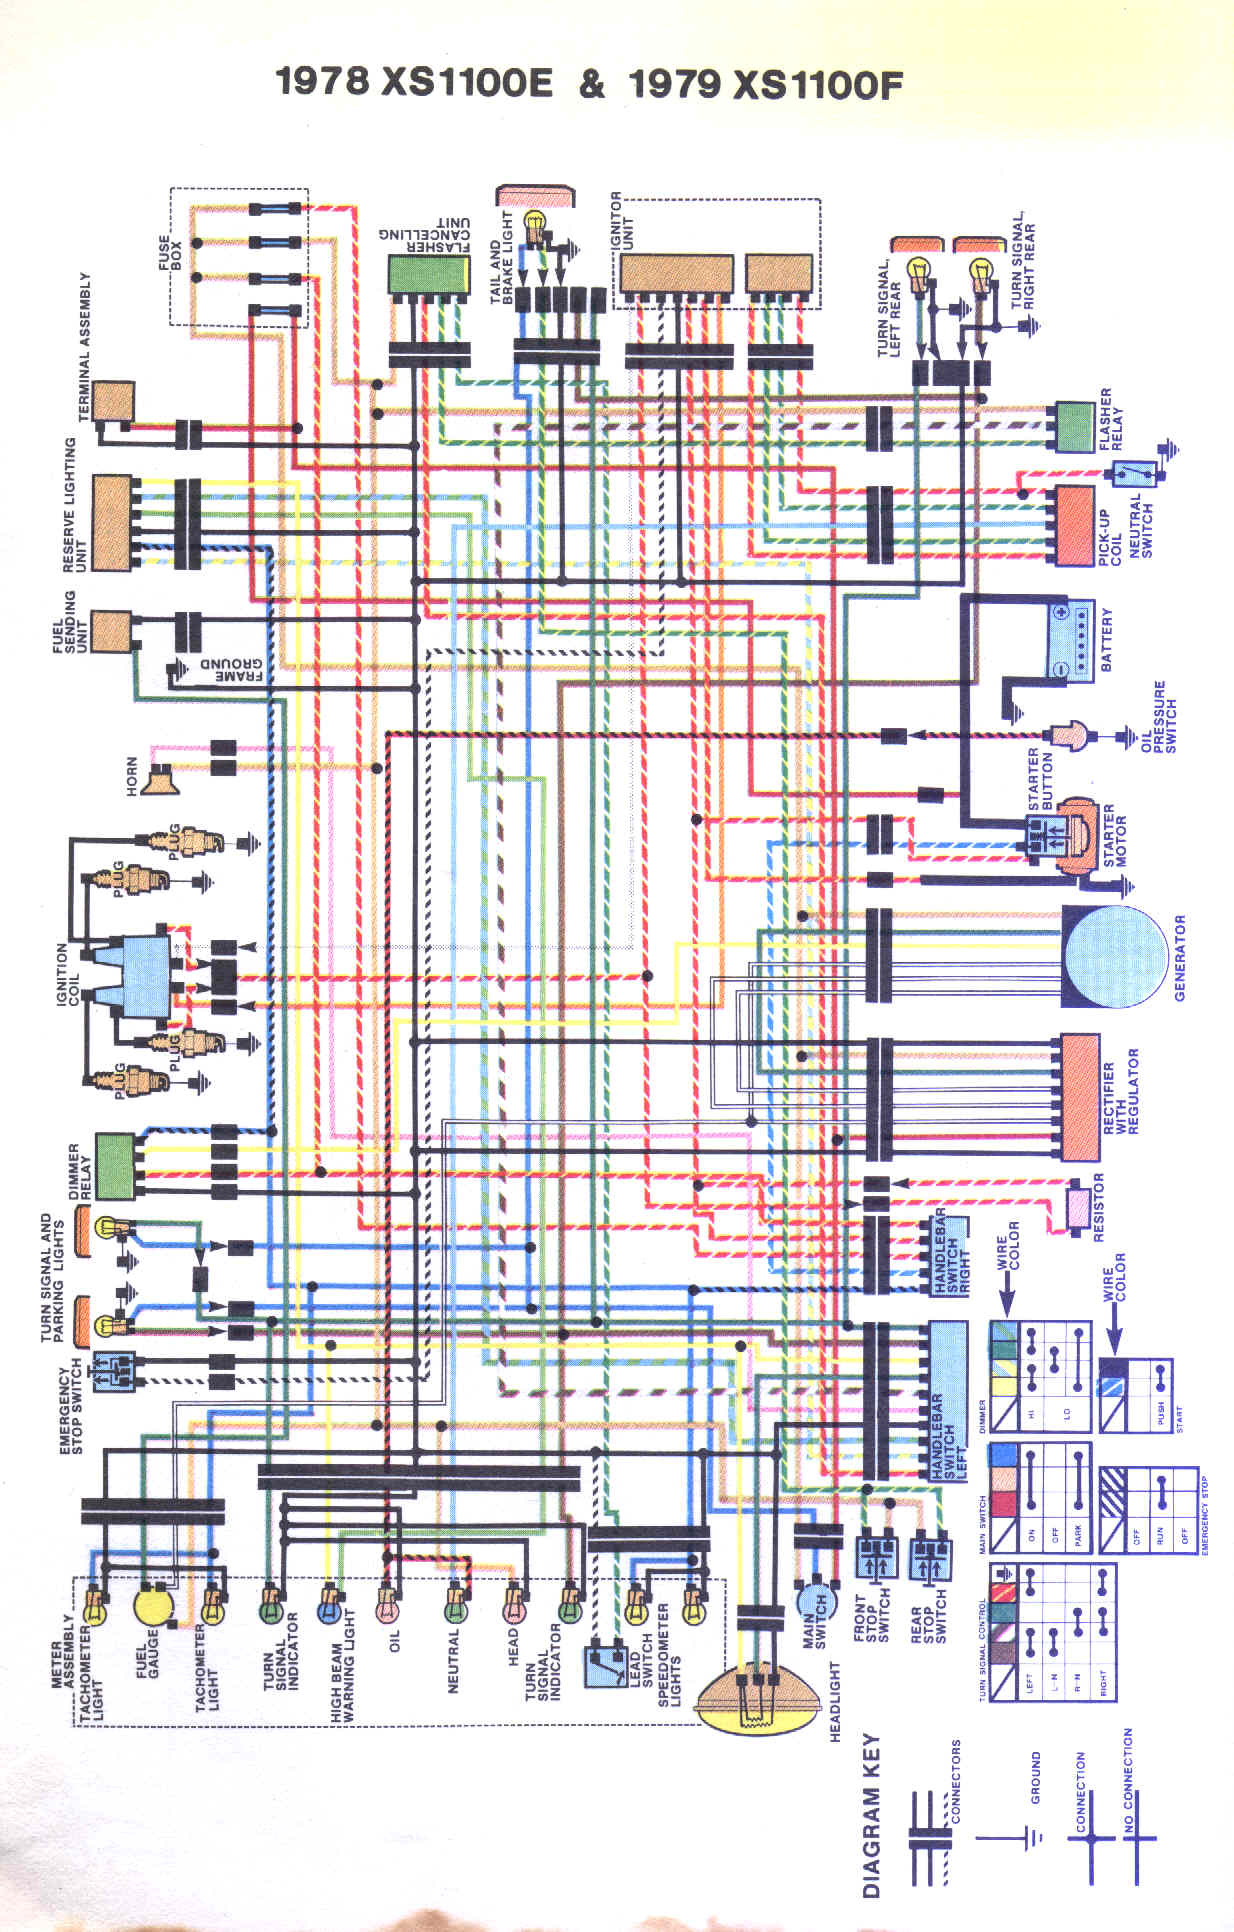 1979 Trans Am Wiring Diagram - Home Plow Meyer Wiring Diagram for Wiring  Diagram Schematics | 1980 Pontiac Trans Am Wire Diagram |  | Wiring Diagram Schematics